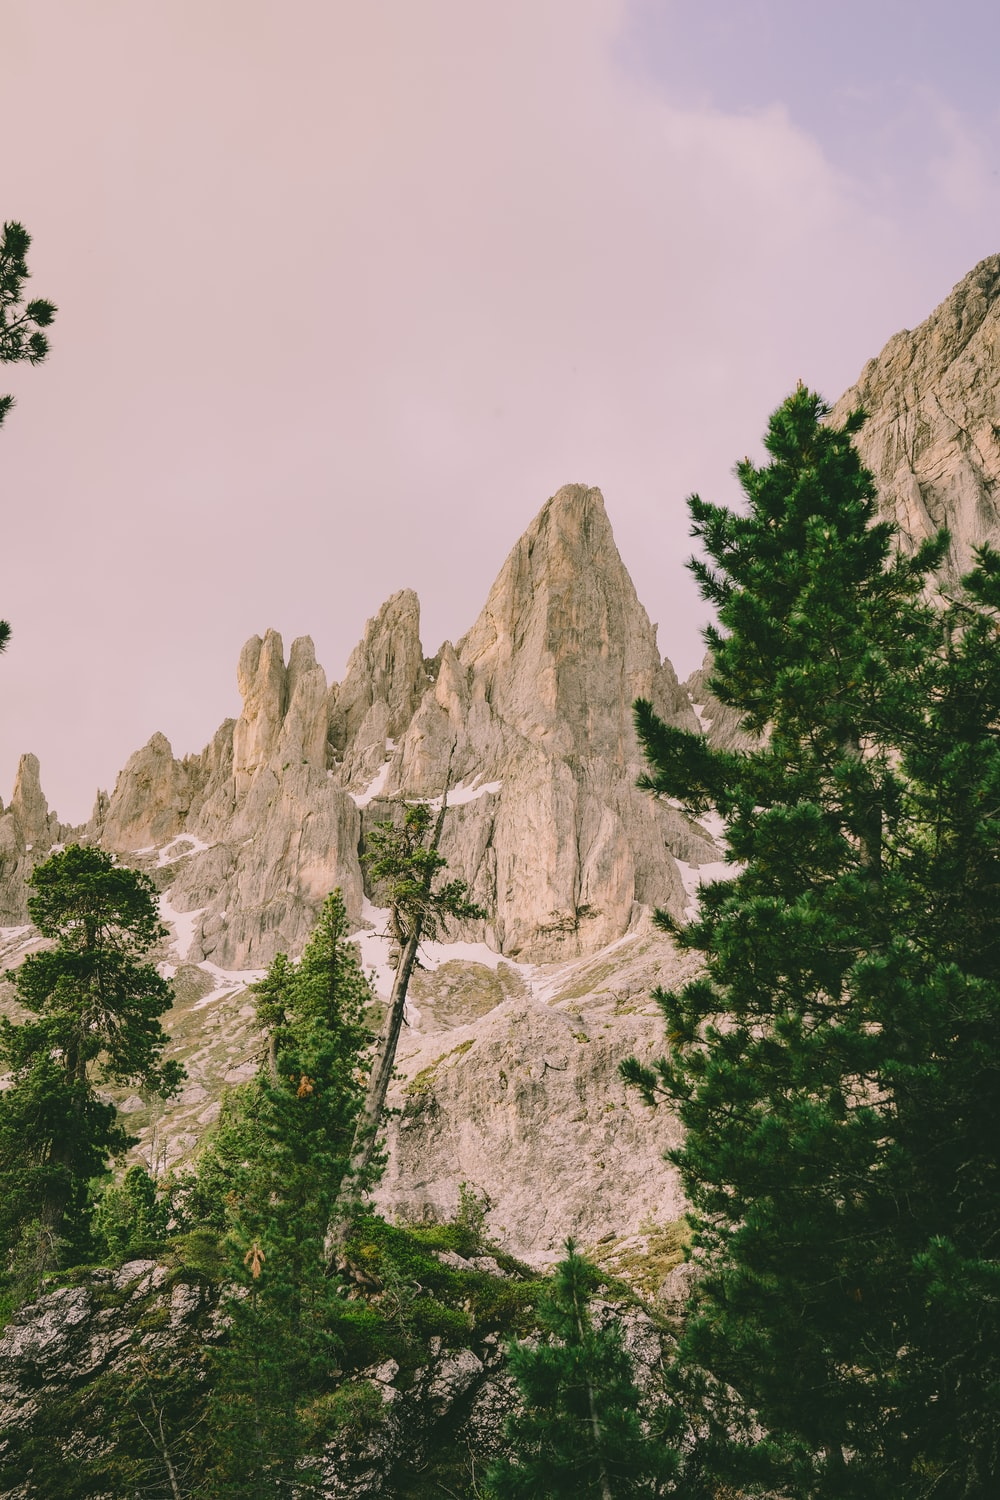 green trees near rocky mountain during daytime